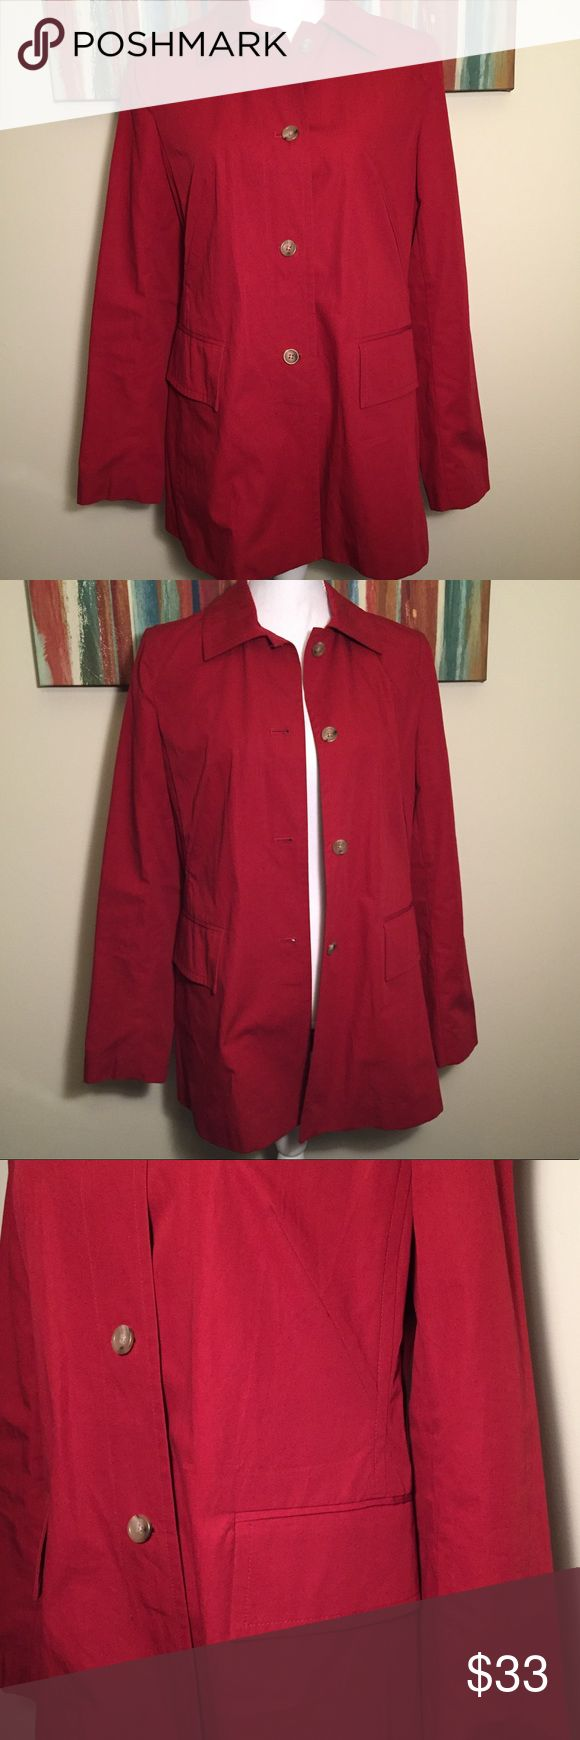 """Banana Republic Button Down Cotton Jacket Medium Banana Republic Button Cotton Jacket  * Brand: Banana Republic * Style: Long Sleeve Jacket * Size: Medium * Color: Red * Materials: 100% Cotton * Measurements: Chest 19.5"""", Length 30"""" * Features: Collared jacket is perfect for fall days, deep side pockets w/flap closure, stitching details & darting on bust, split back, four button closure, unlined white inner piping * Condition: Never worn, left pocket is still stitched closed. Will dry clean…"""